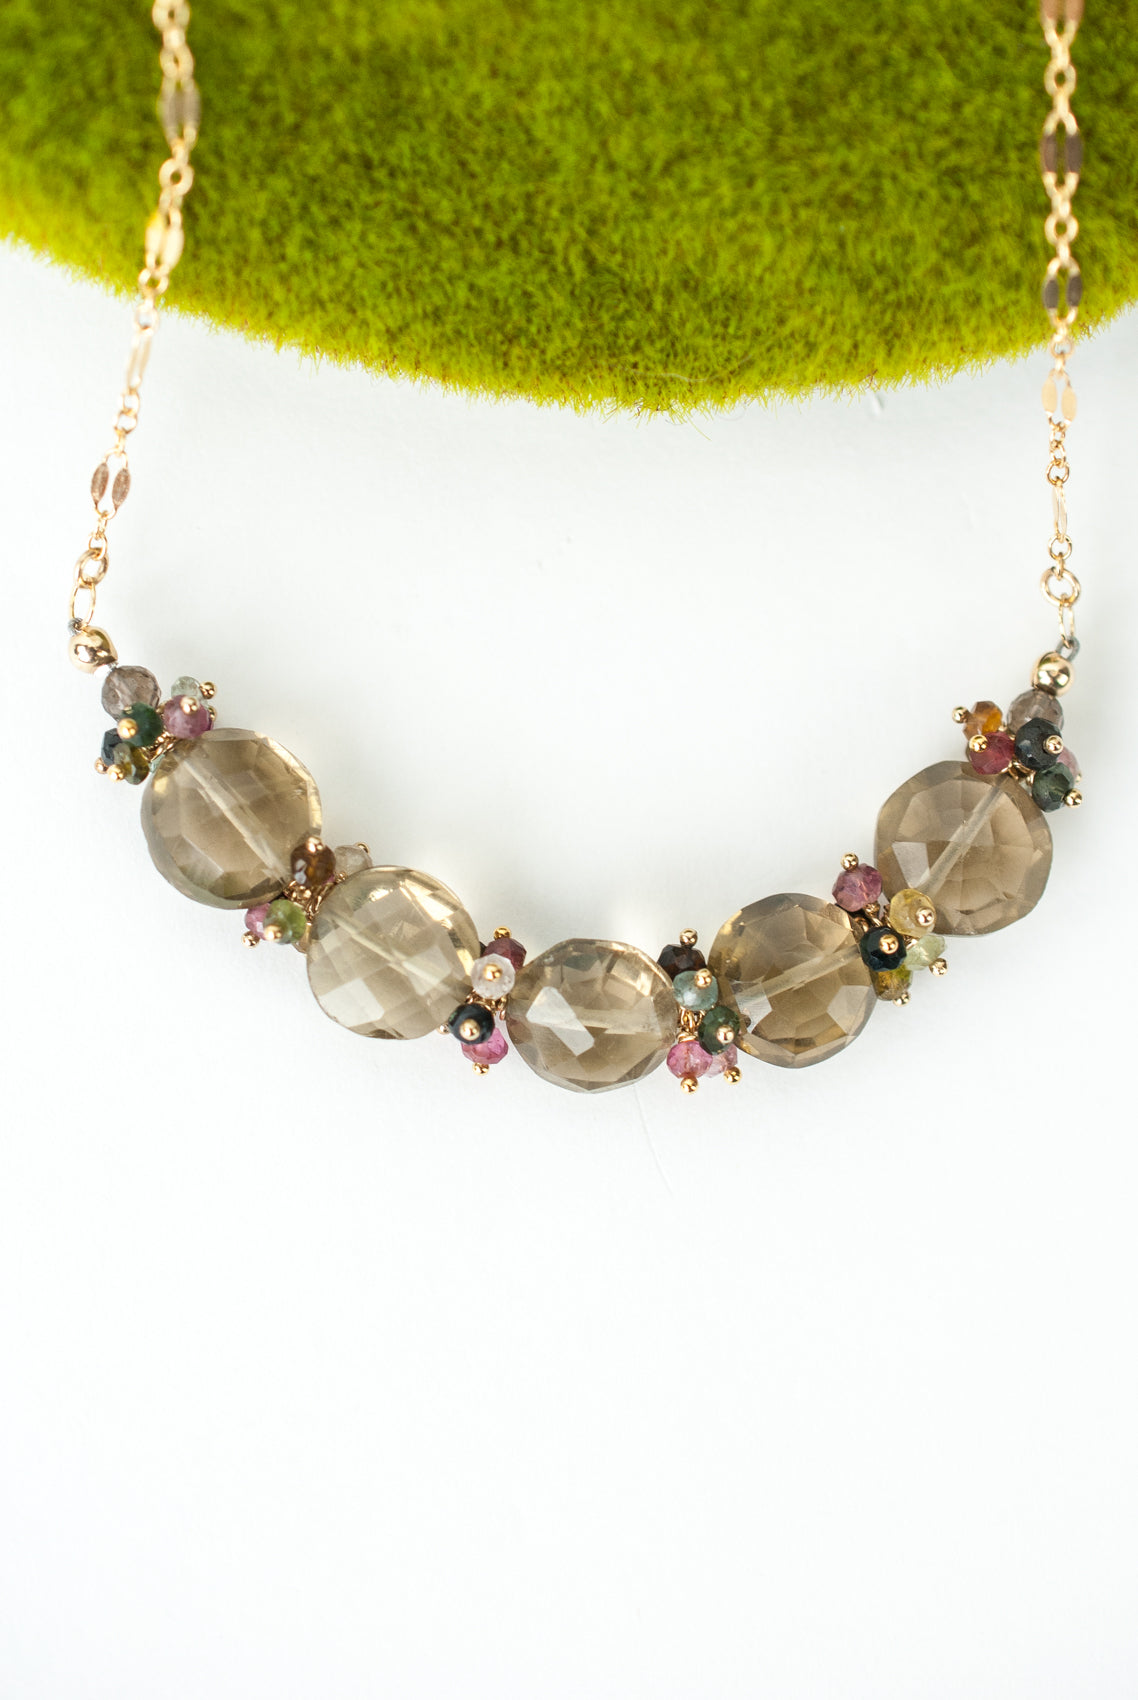 "Limited Edition 16.5-18.5"" Tourmaline, Smokey Quartz Cluster Necklace"